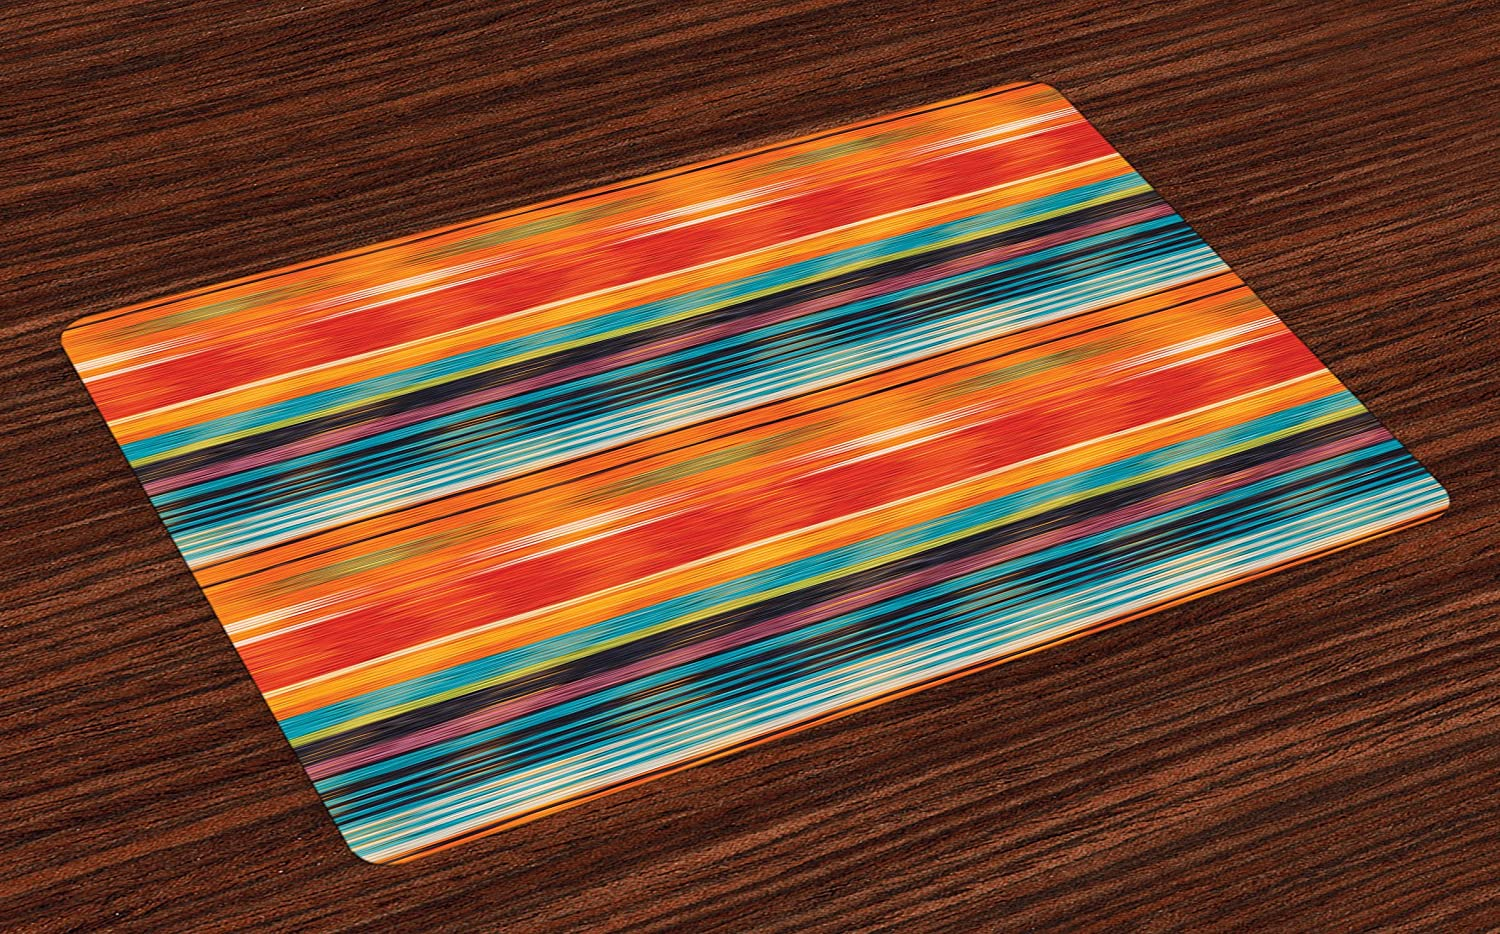 Lunarable Mexican Place Mats Set of 4, Abstract Vibrant Vintage Aztec Motif Gradient Blurred Lines Ecuador Crafts Image, Washable Fabric Placemats for Dining Table, Standard Size, Orange